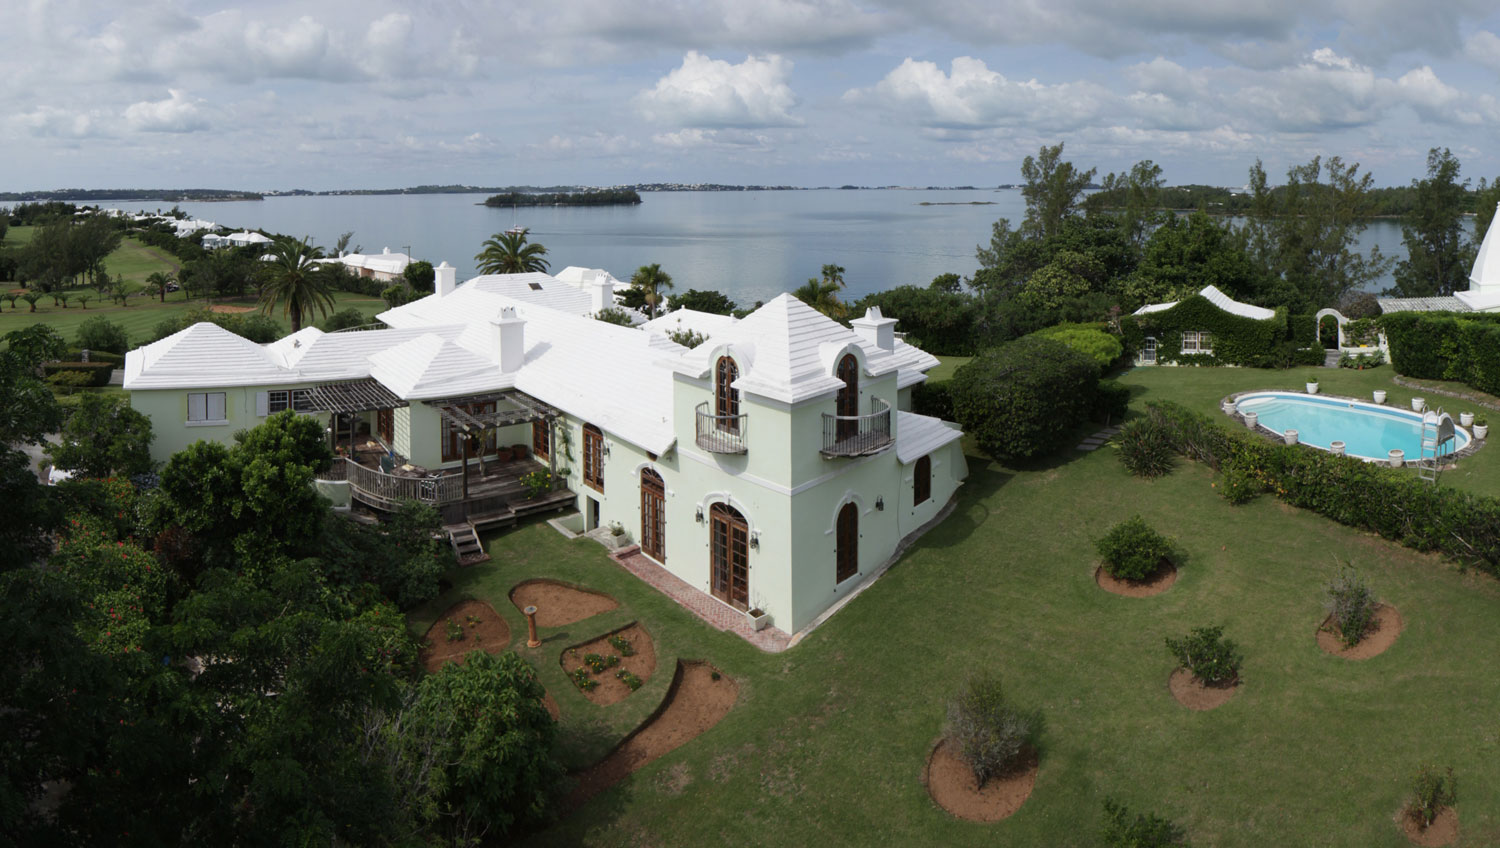 A magnificent colonial-style mansion, Heron Hill is located on the historic golf links at Riddells Bay Golf & Country Club. Established in 1922, Riddells Bay Golf & Country Club is a private club and home to Bermuda's oldest course, a beautiful par-70 championship links course.